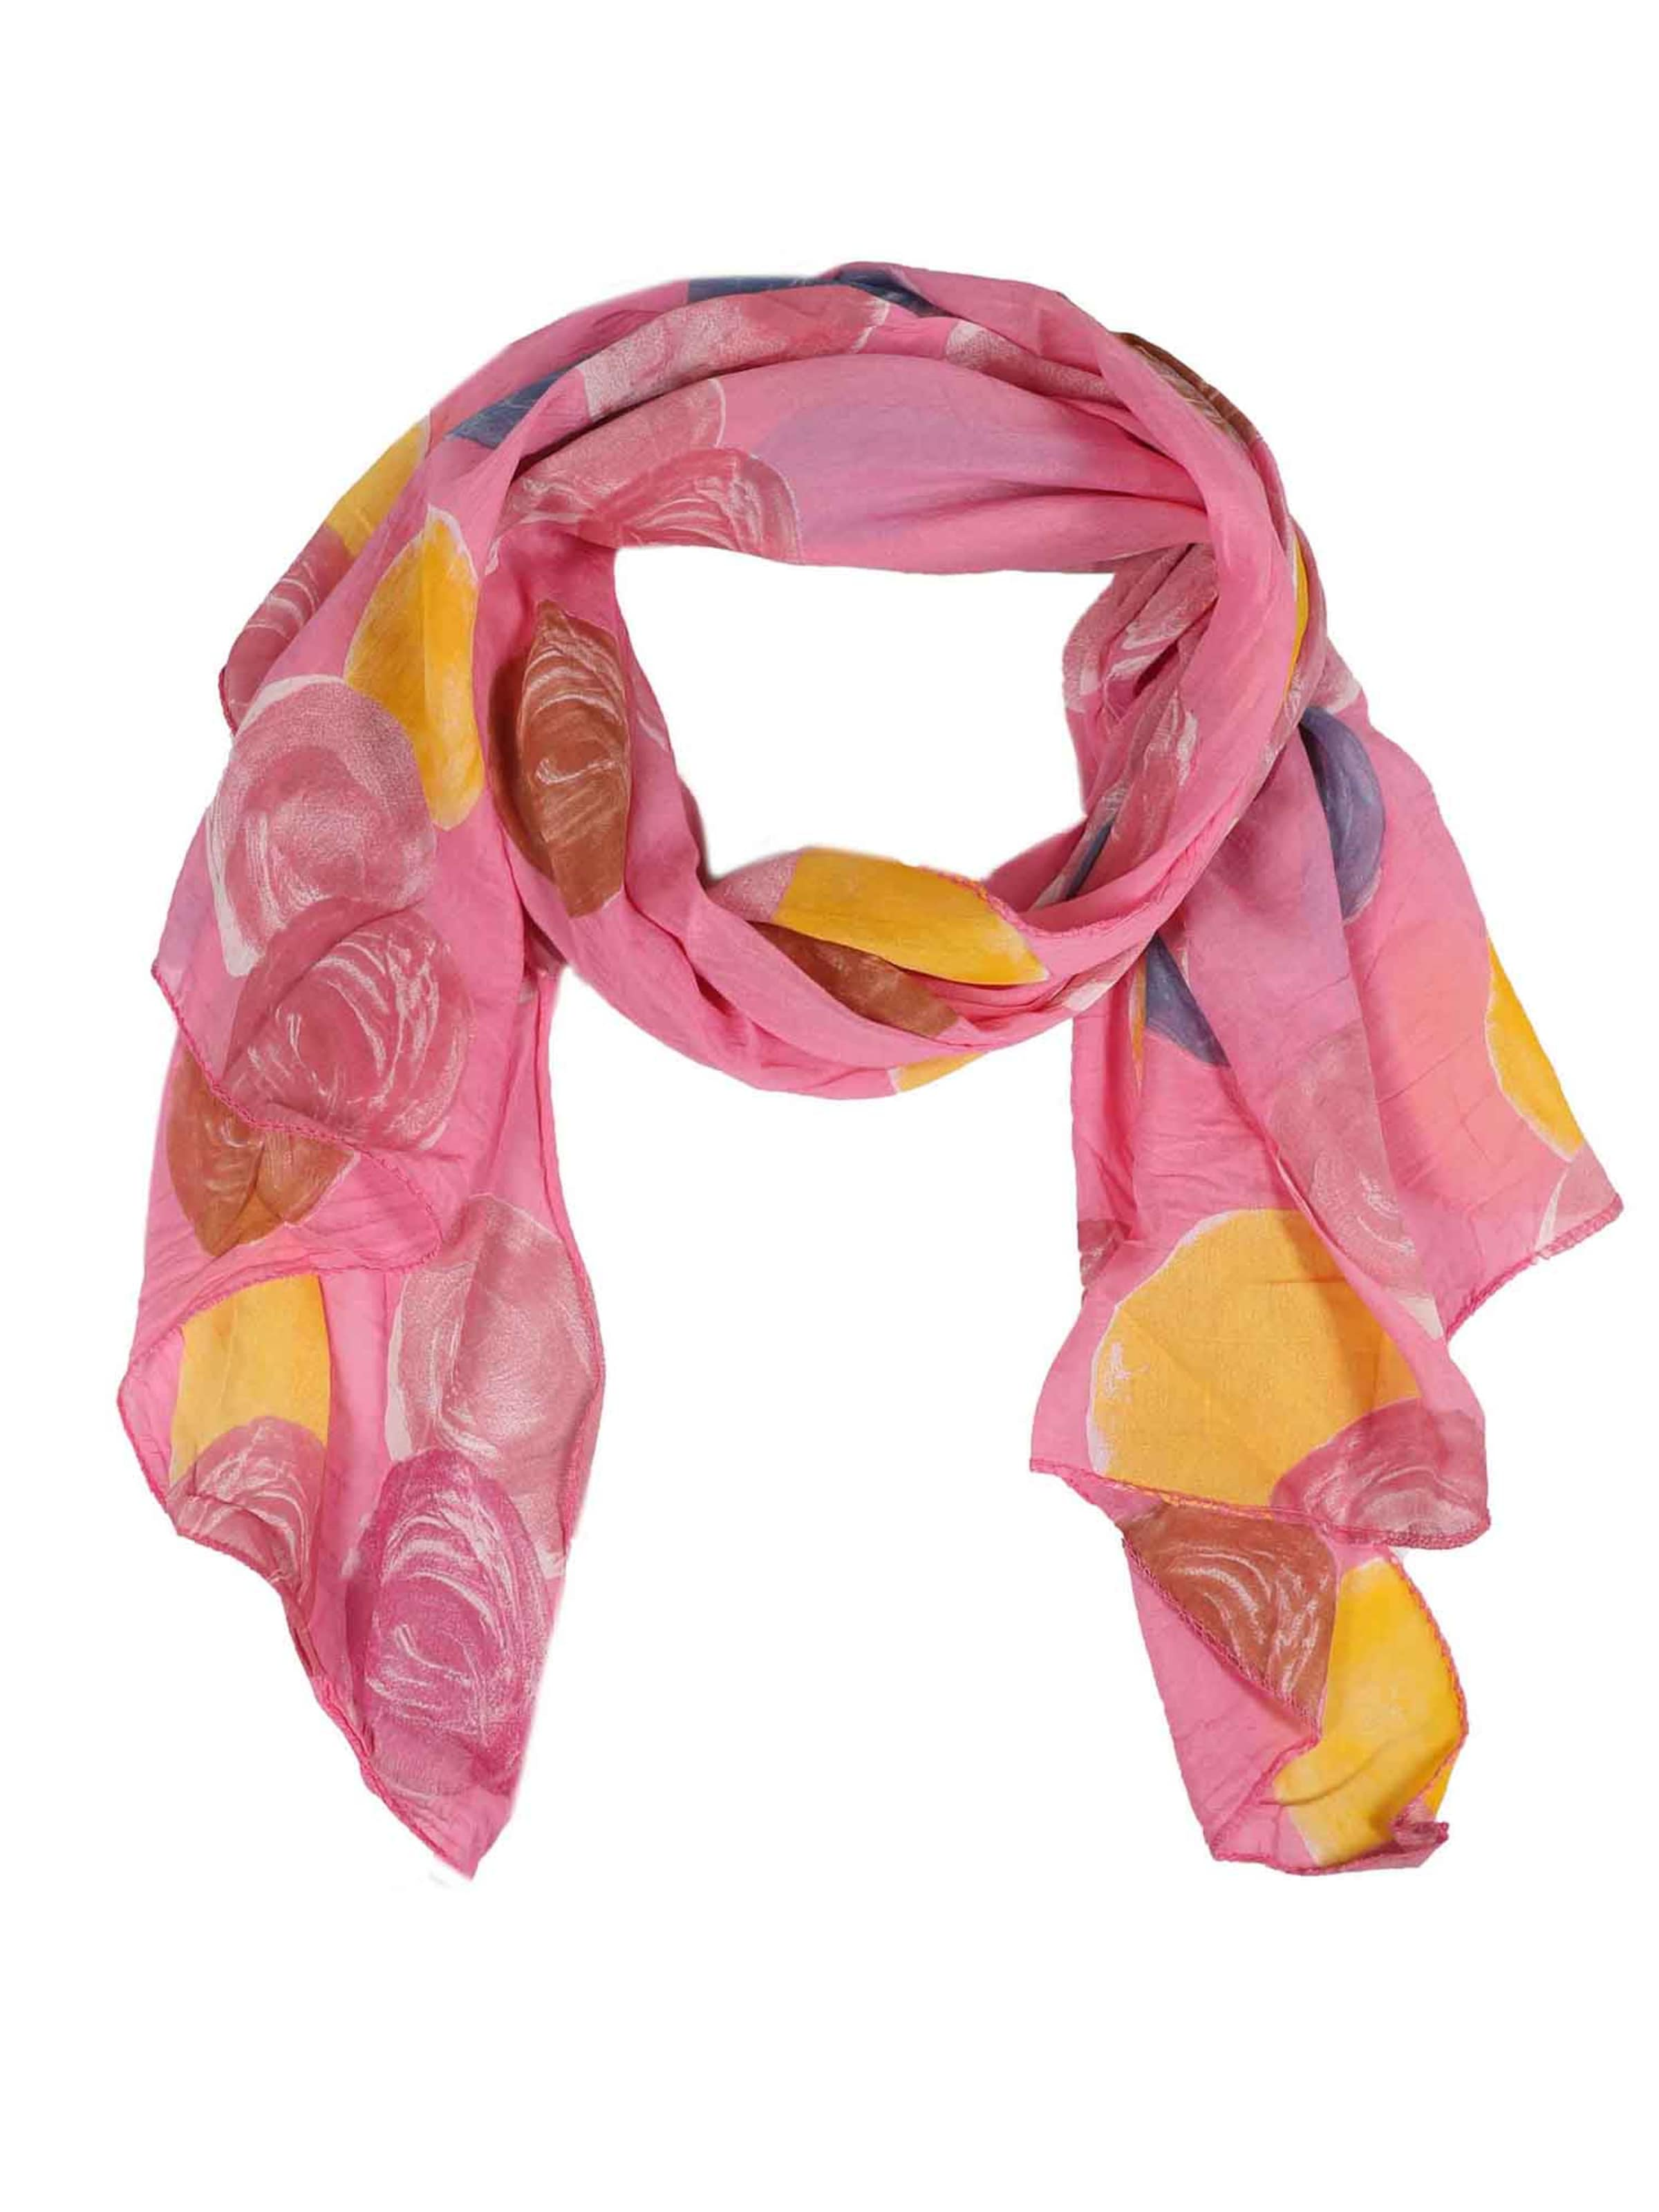 You 'alessandra' About Foulard En RoseRouge mnN80w